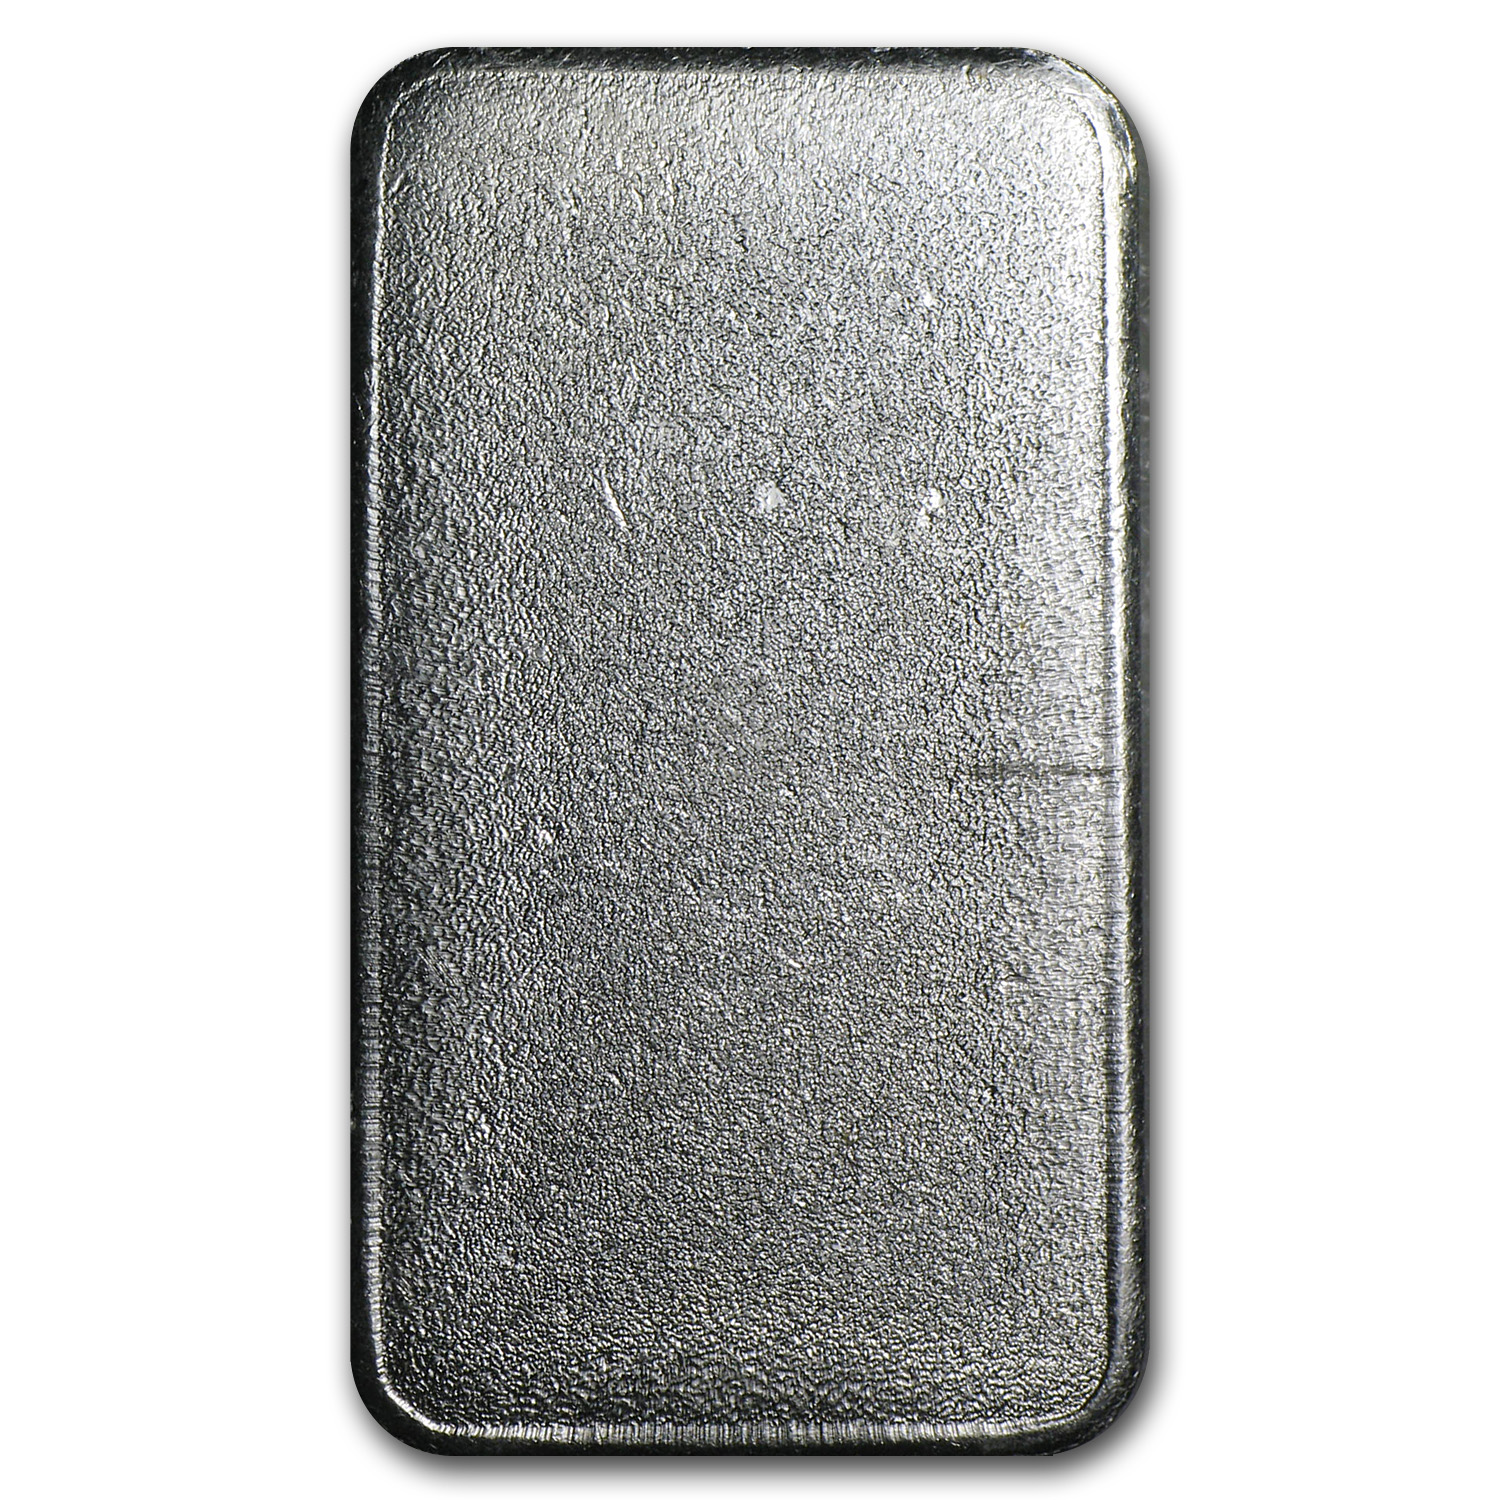 1 oz Silver Bars - Oxford Mint